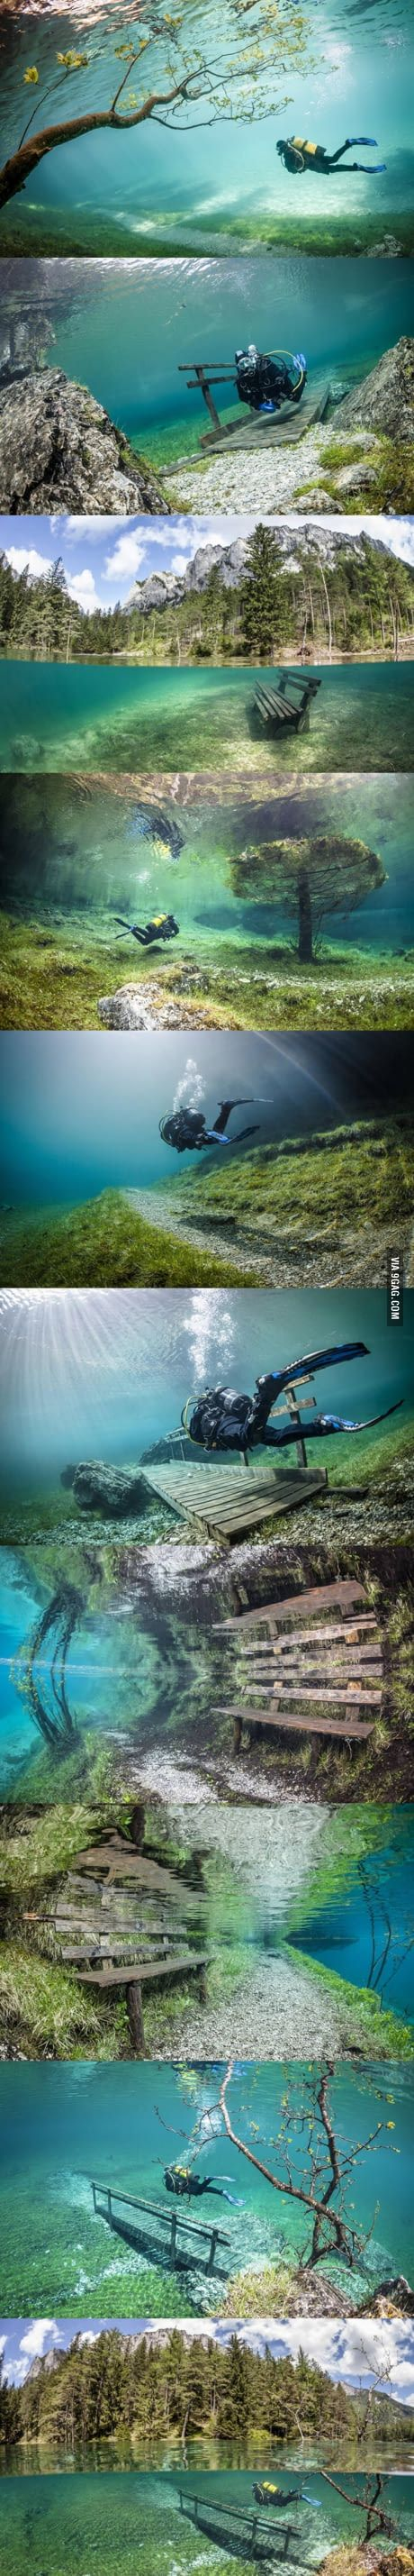 Underwater park in Austria - Grüner See (Green Lake) near the town of Tragöß, Austria. During winter, the lake is 1-2 meters deep, but fills to a depth of 12 meters when spring introduces snowmelt.